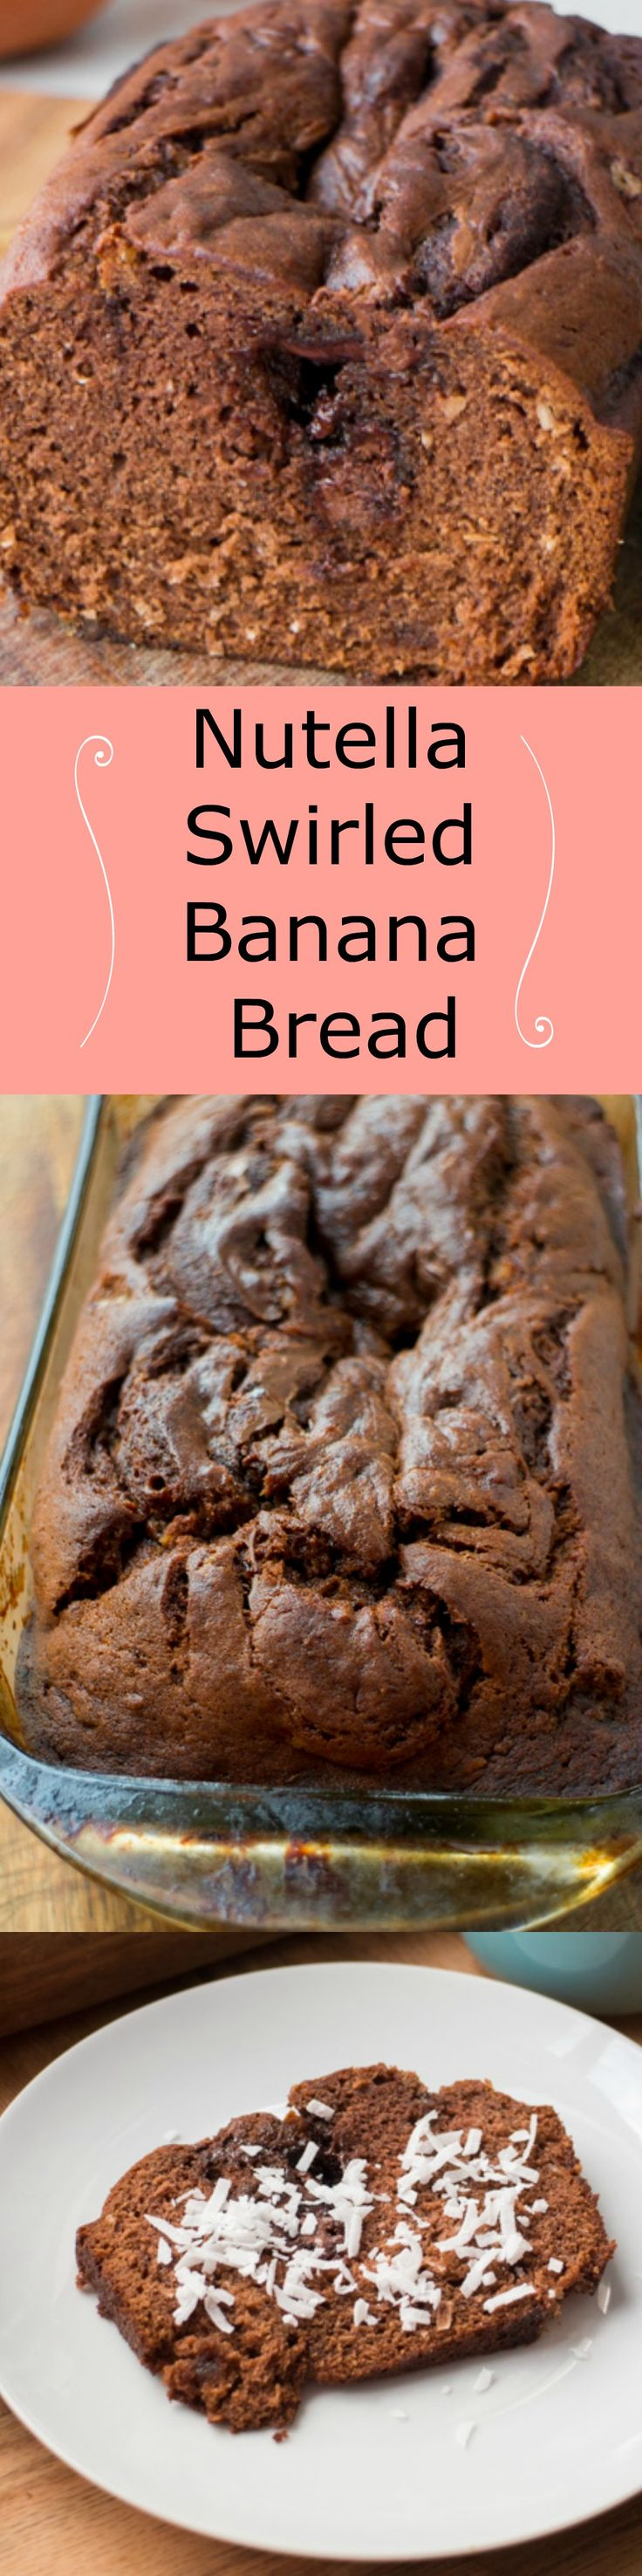 17 Best ideas about Coconut Bread Recipe on Pinterest ...